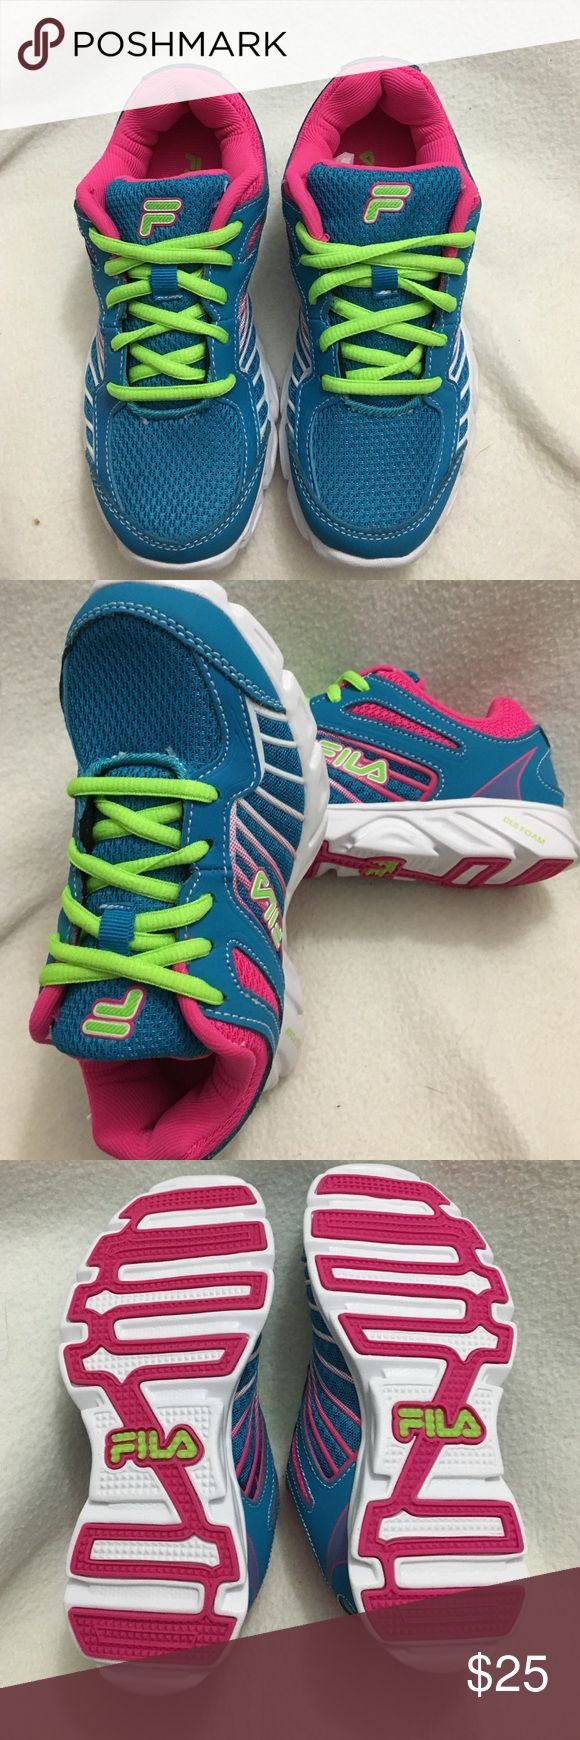 Girls shoes These are very fashionable shoes great for school good solid shoes knit on outside Fila Running Shoes Sneakers